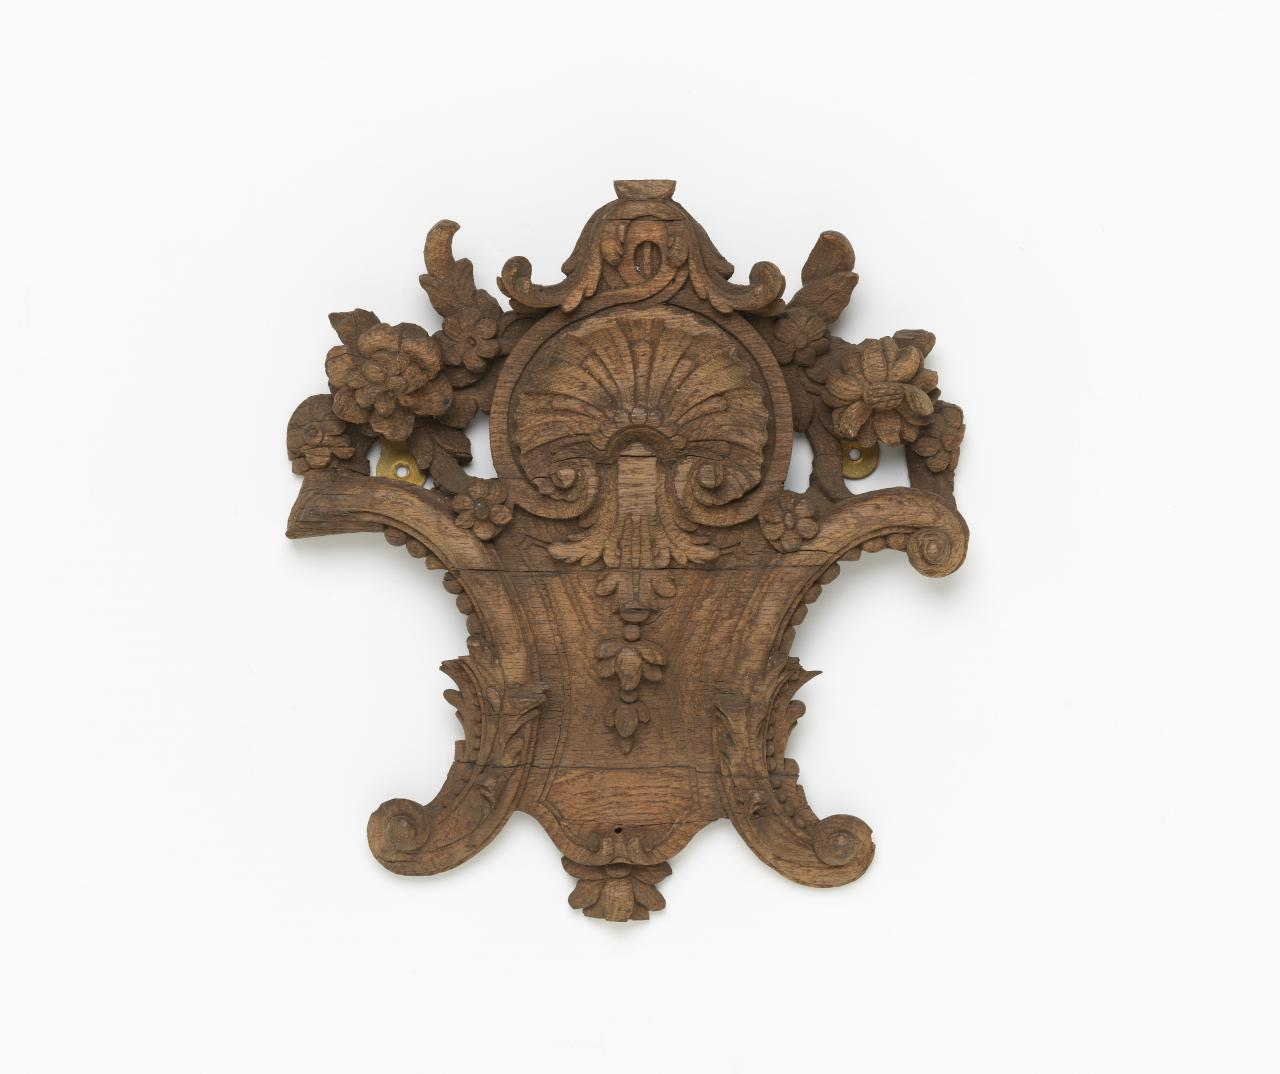 Carved ornament